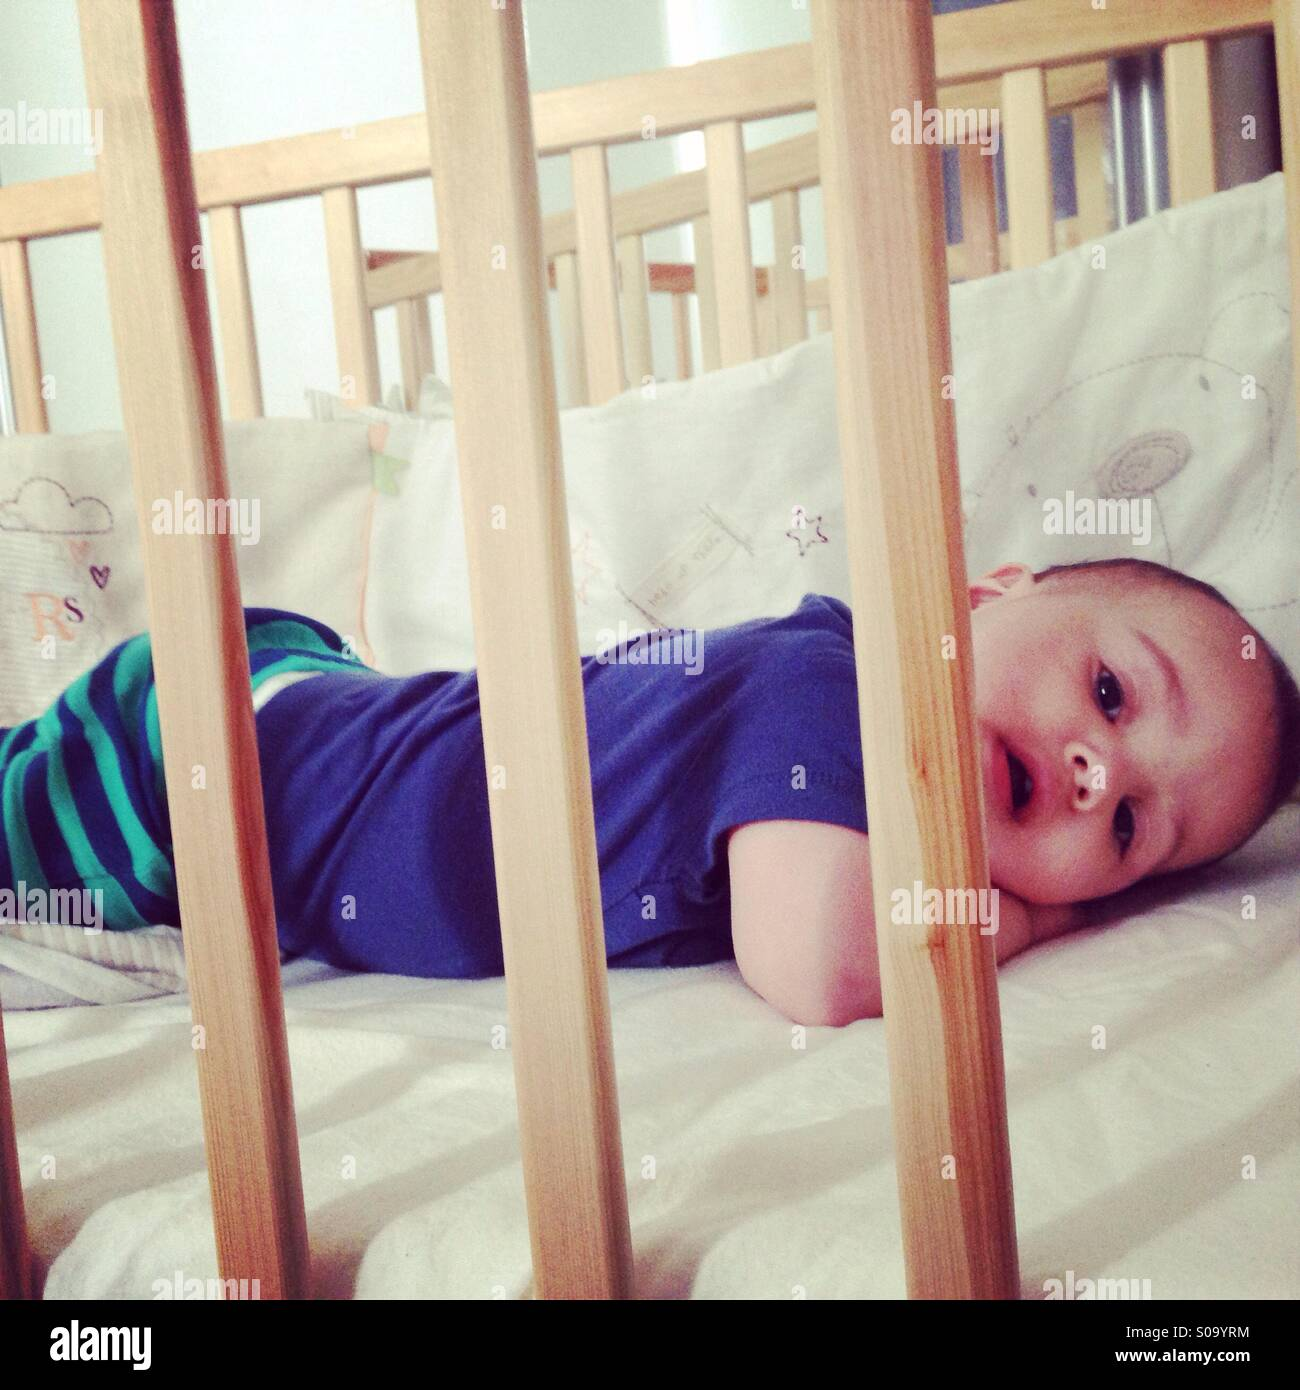 Toddler in cot - Stock Image